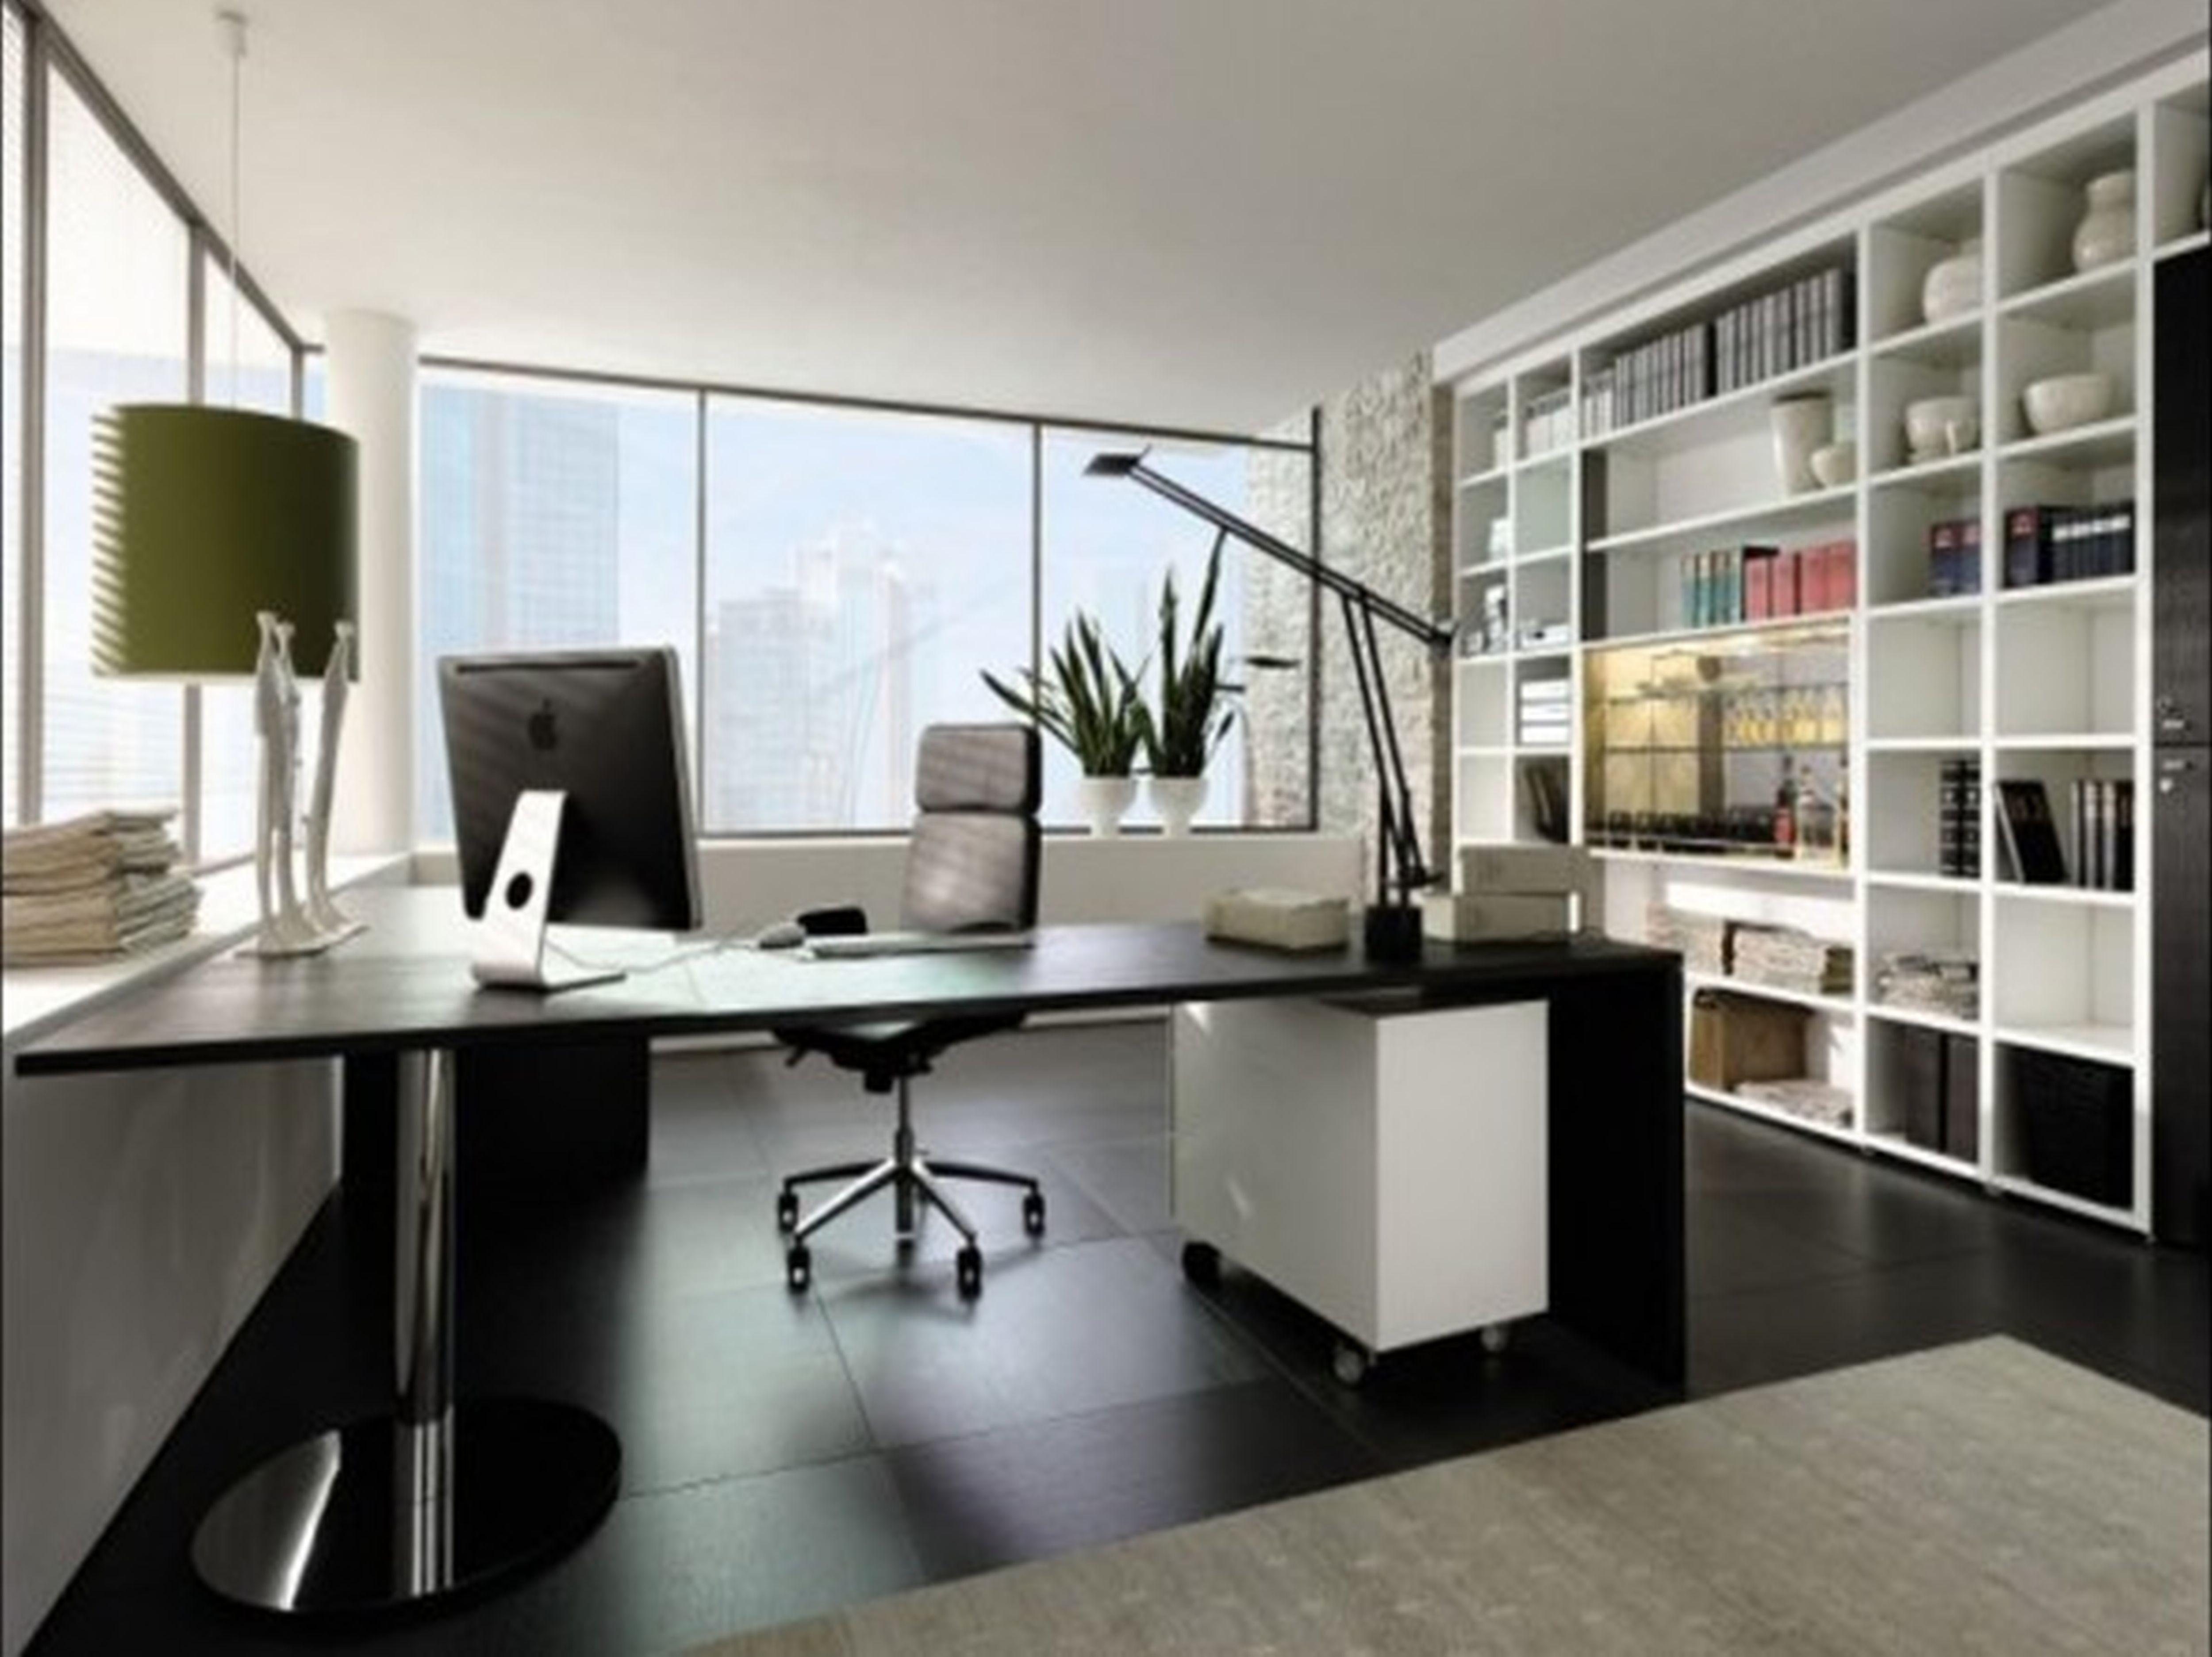 Office design ideas for work hd widescreen 11 hd for Virtual office design